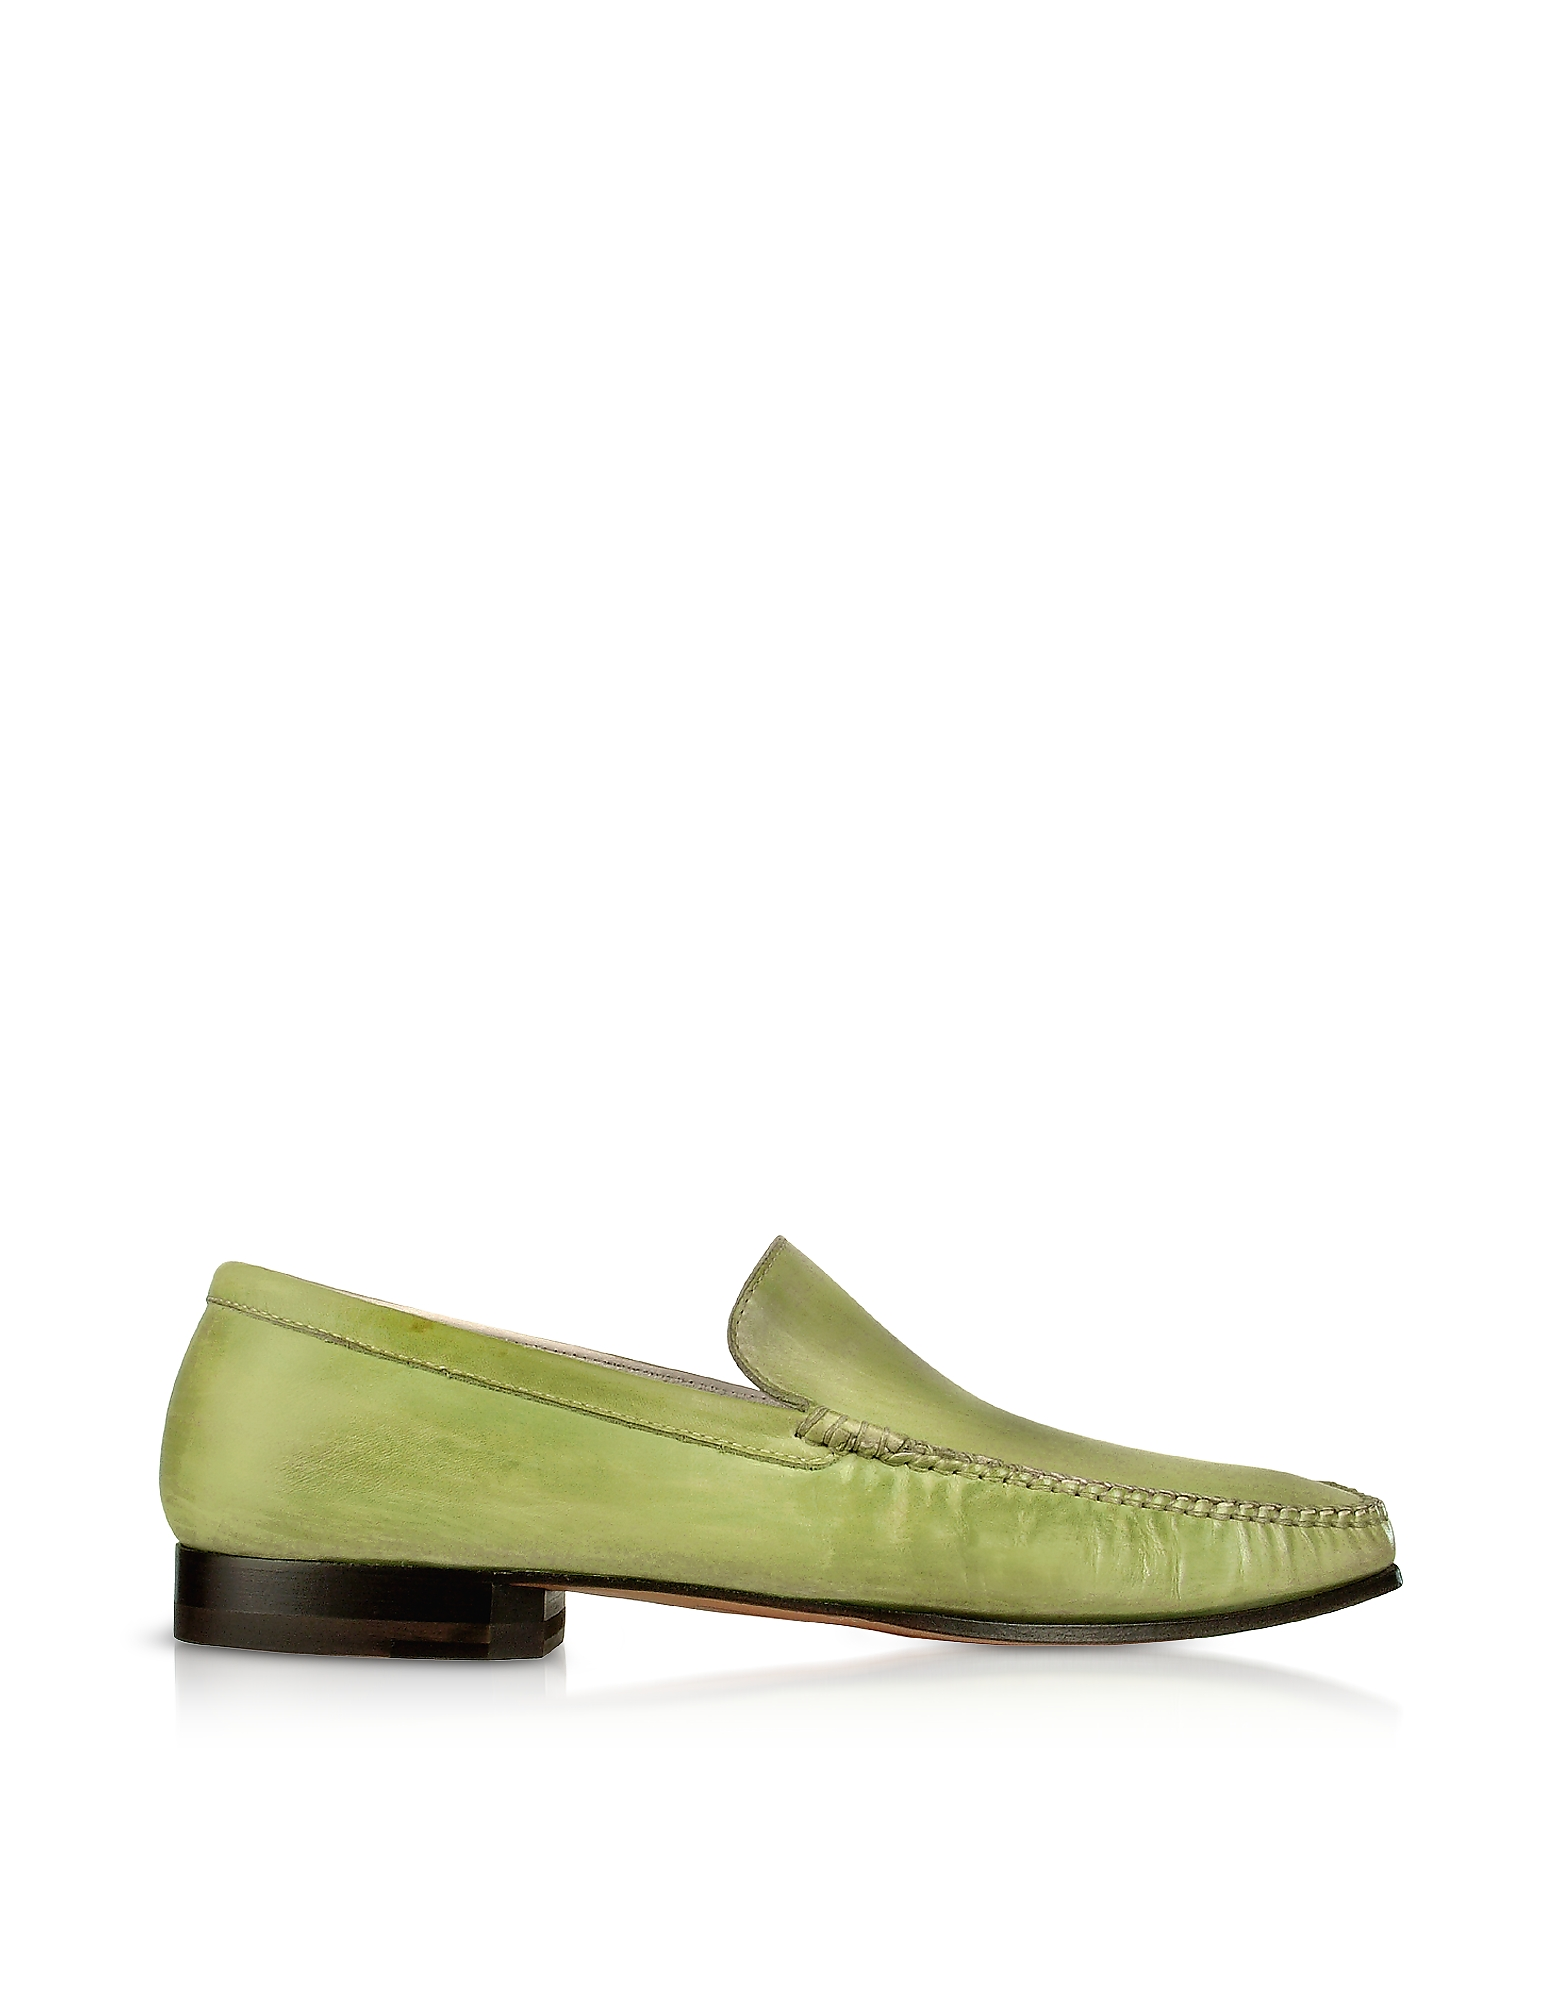 Pakerson Designer Shoes, Pistachio Italian Handmade Leather Loafer Shoes